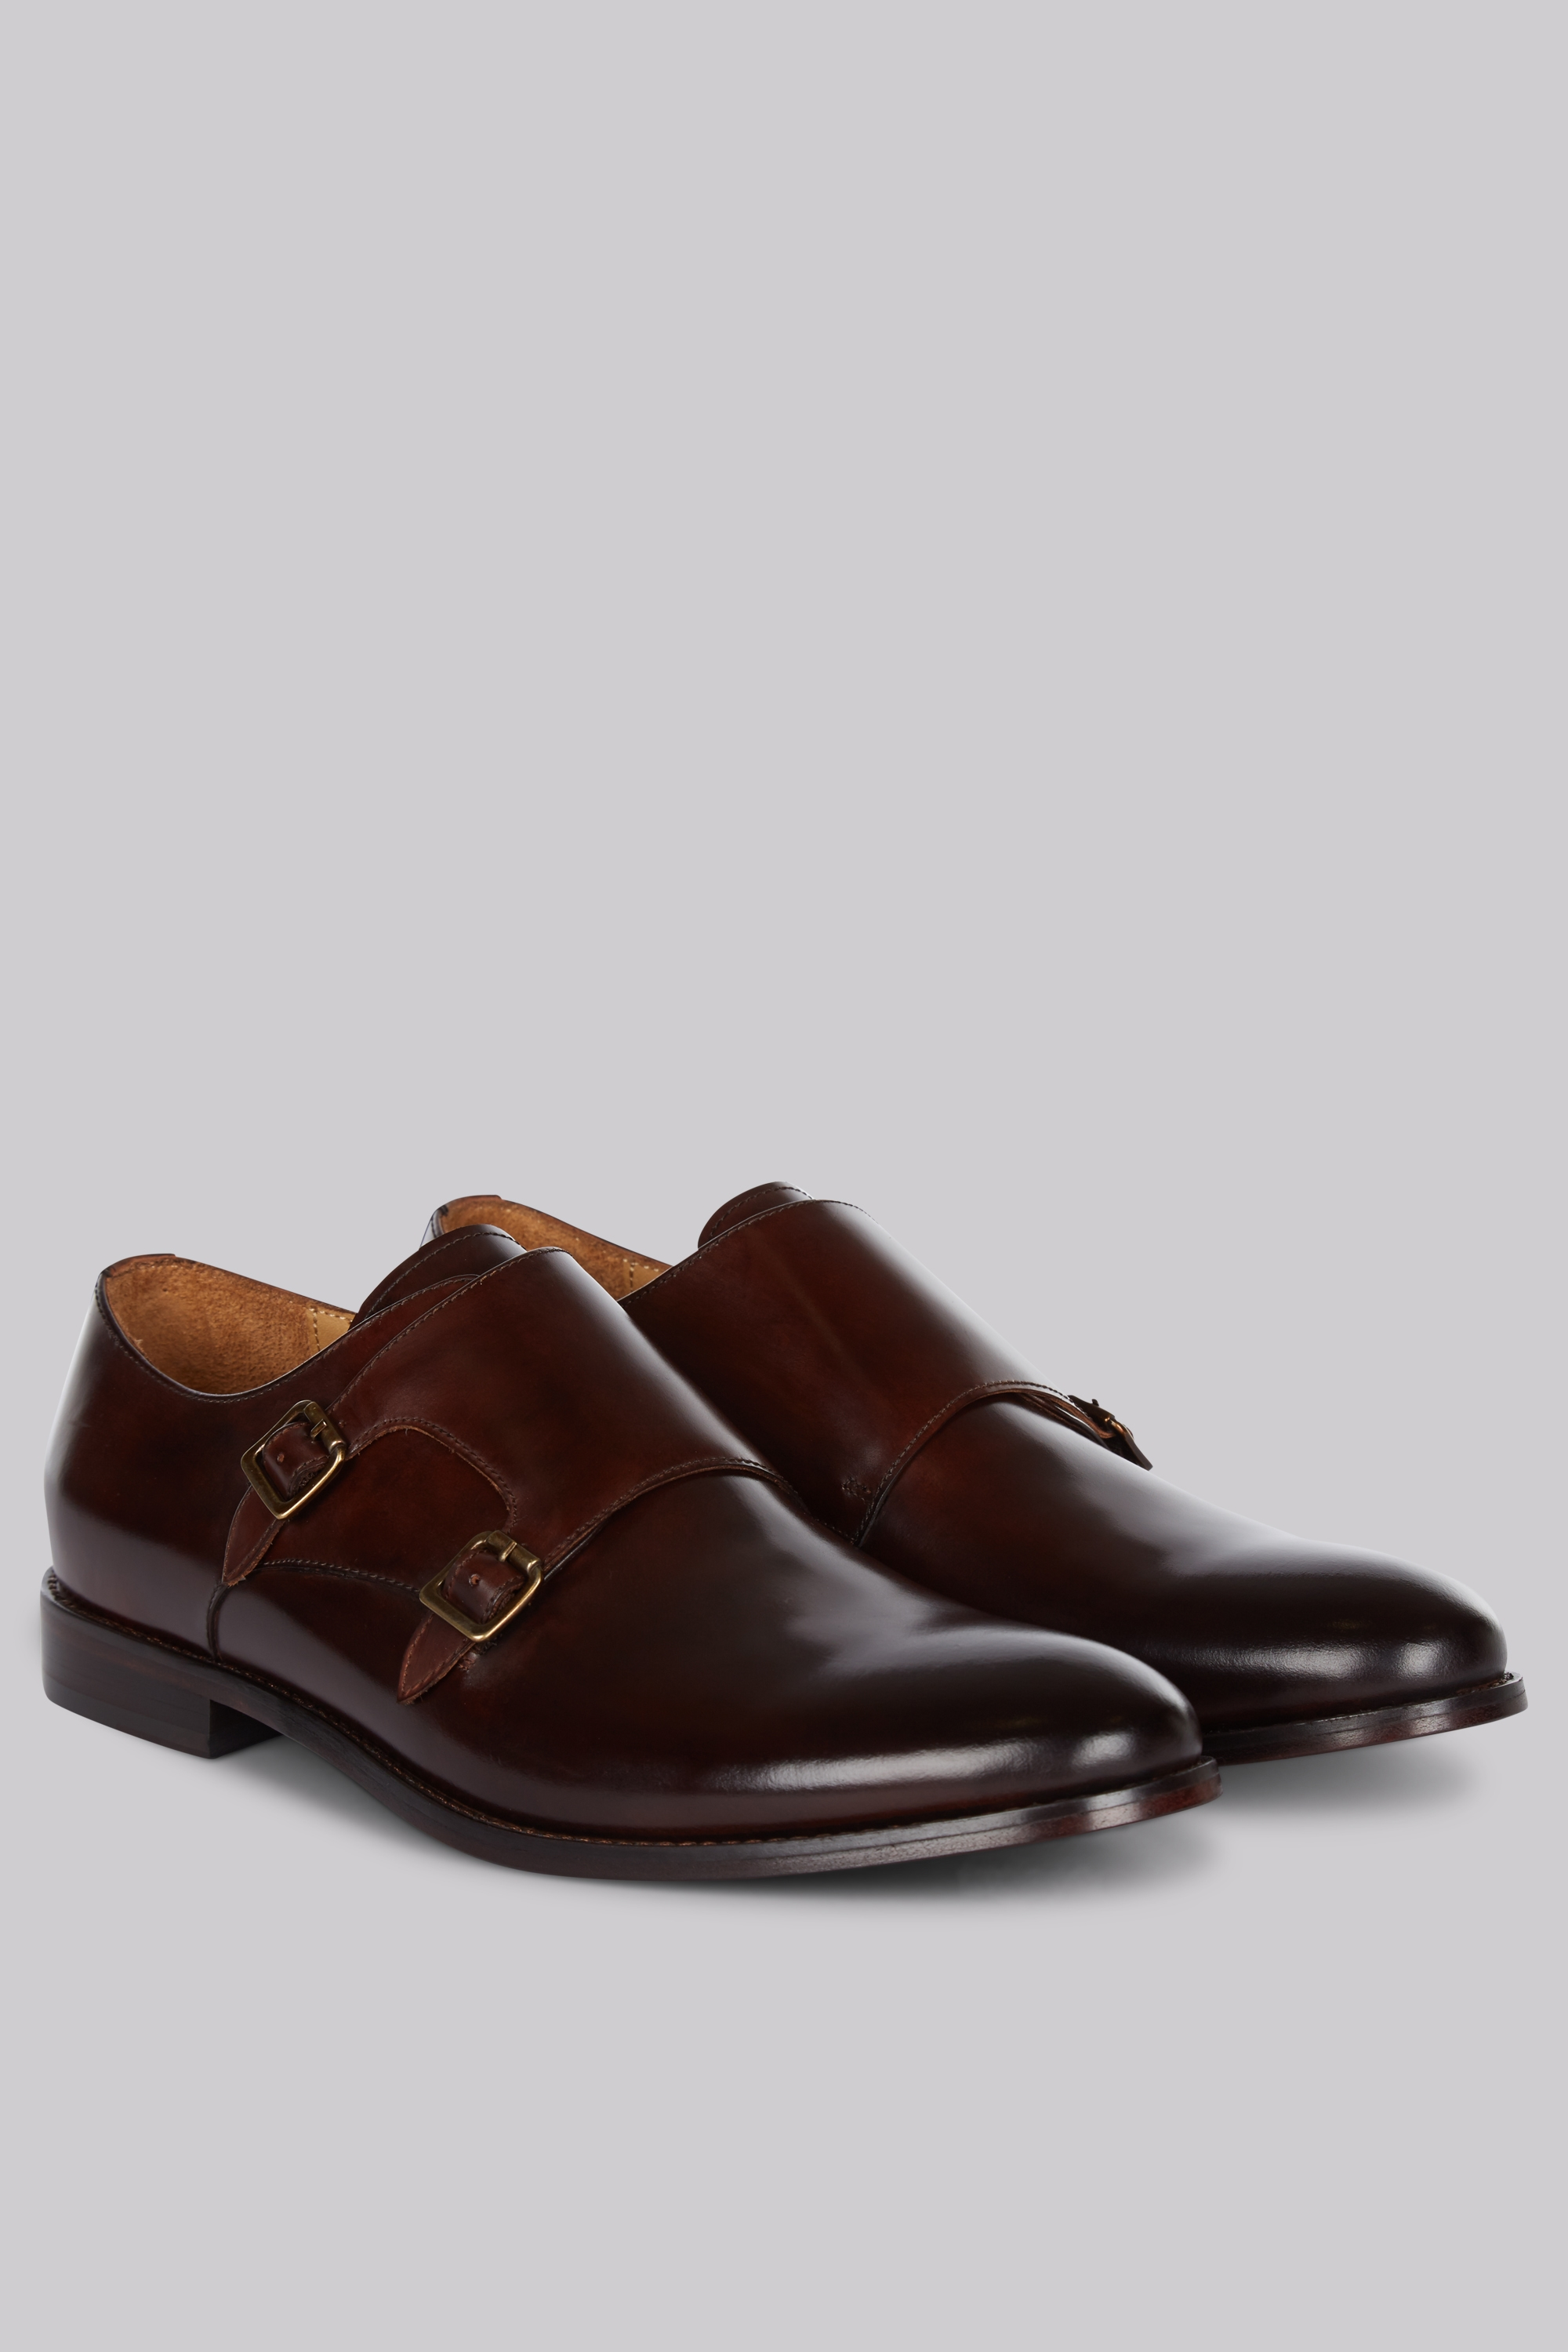 Moss Bros Hardy Amies Brown Double Monk Shoes